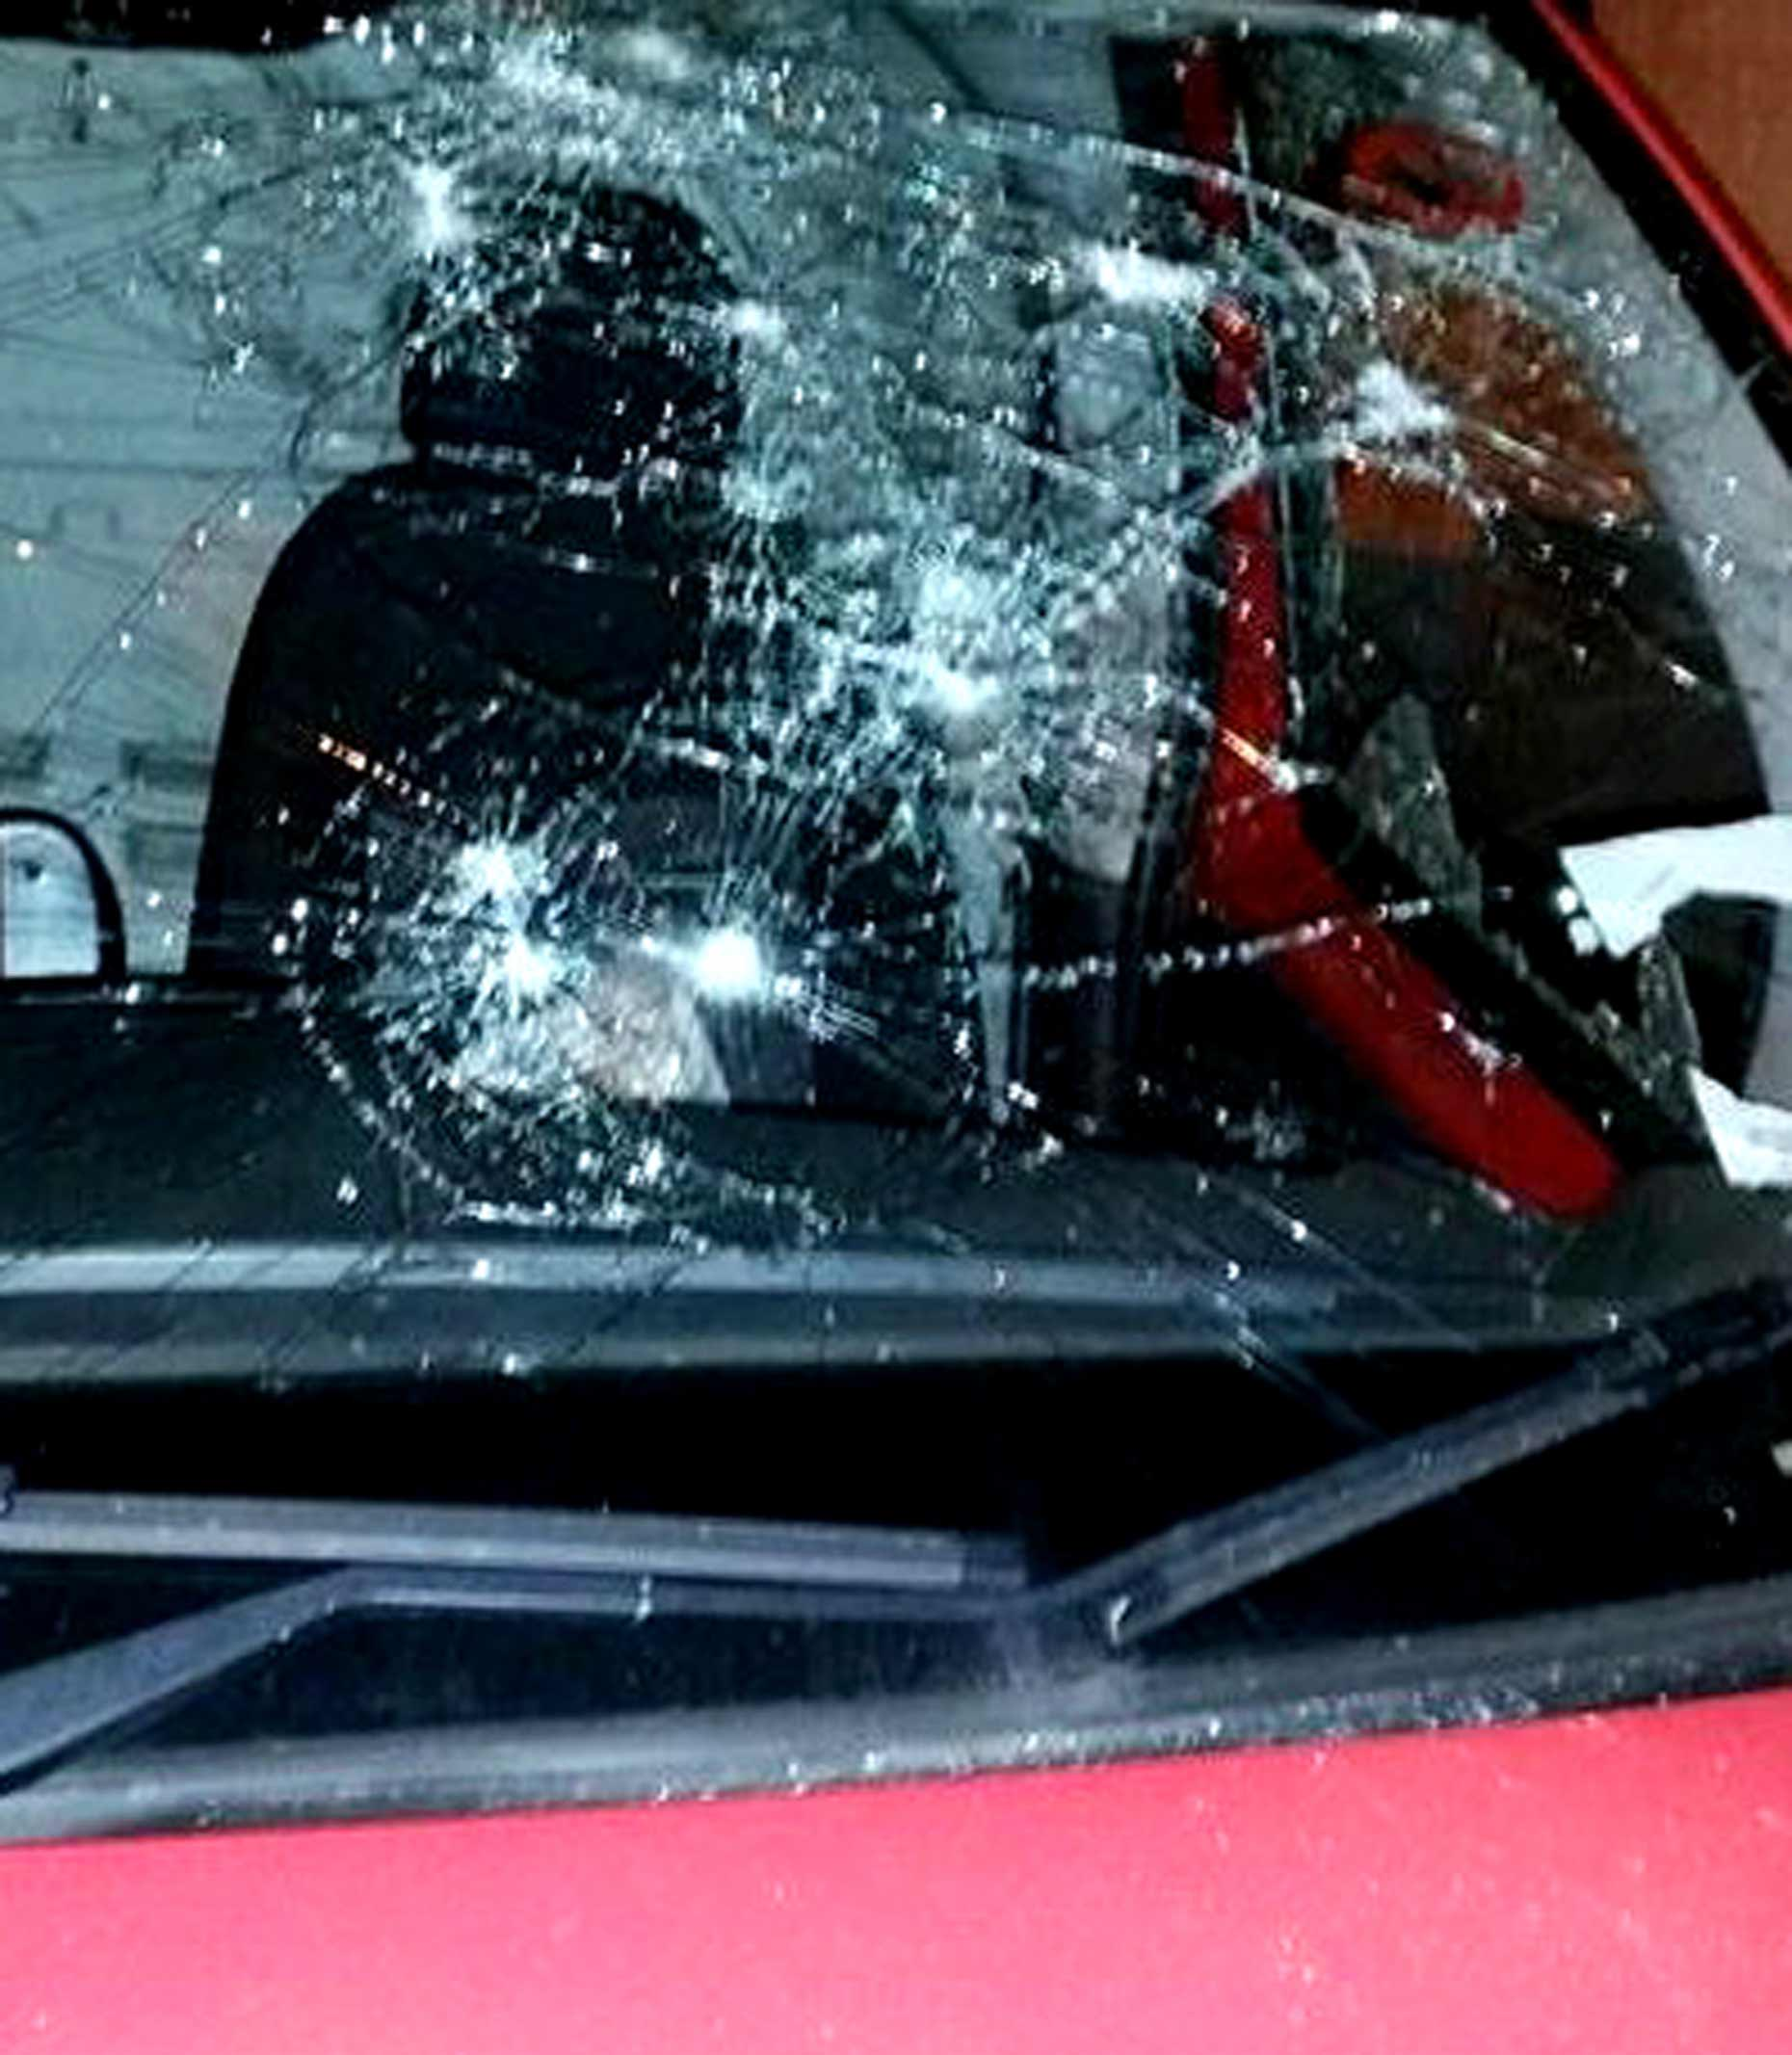 The Royal Mail van was attacked during the incident.